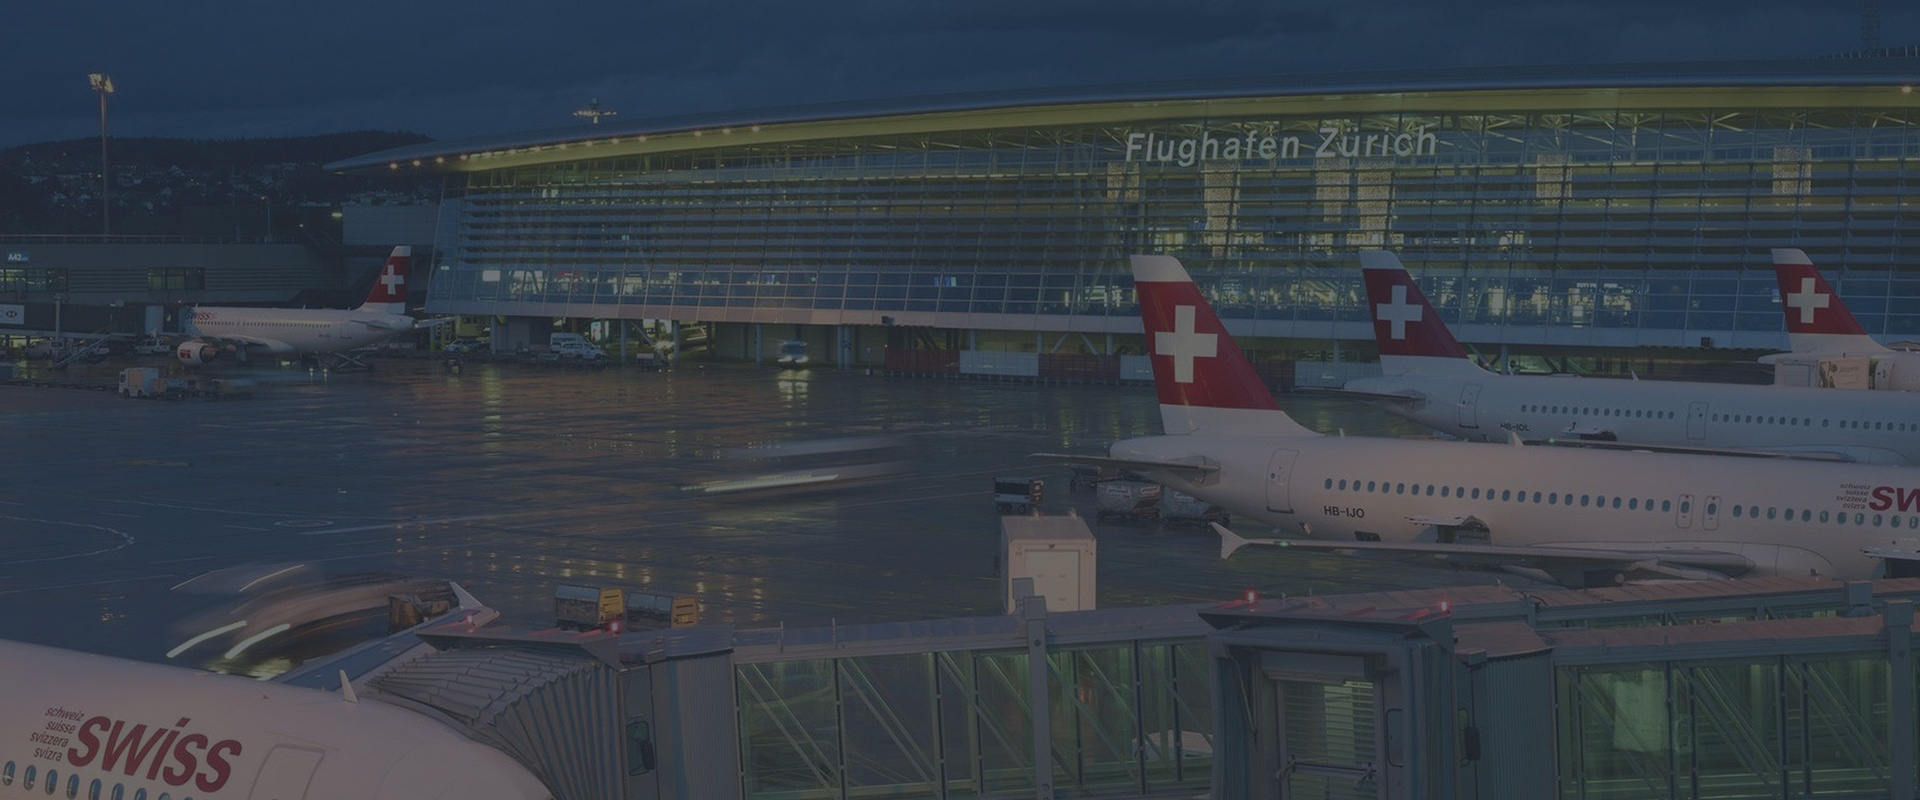 ZURICH AIRPORTS SUCCESS STORY